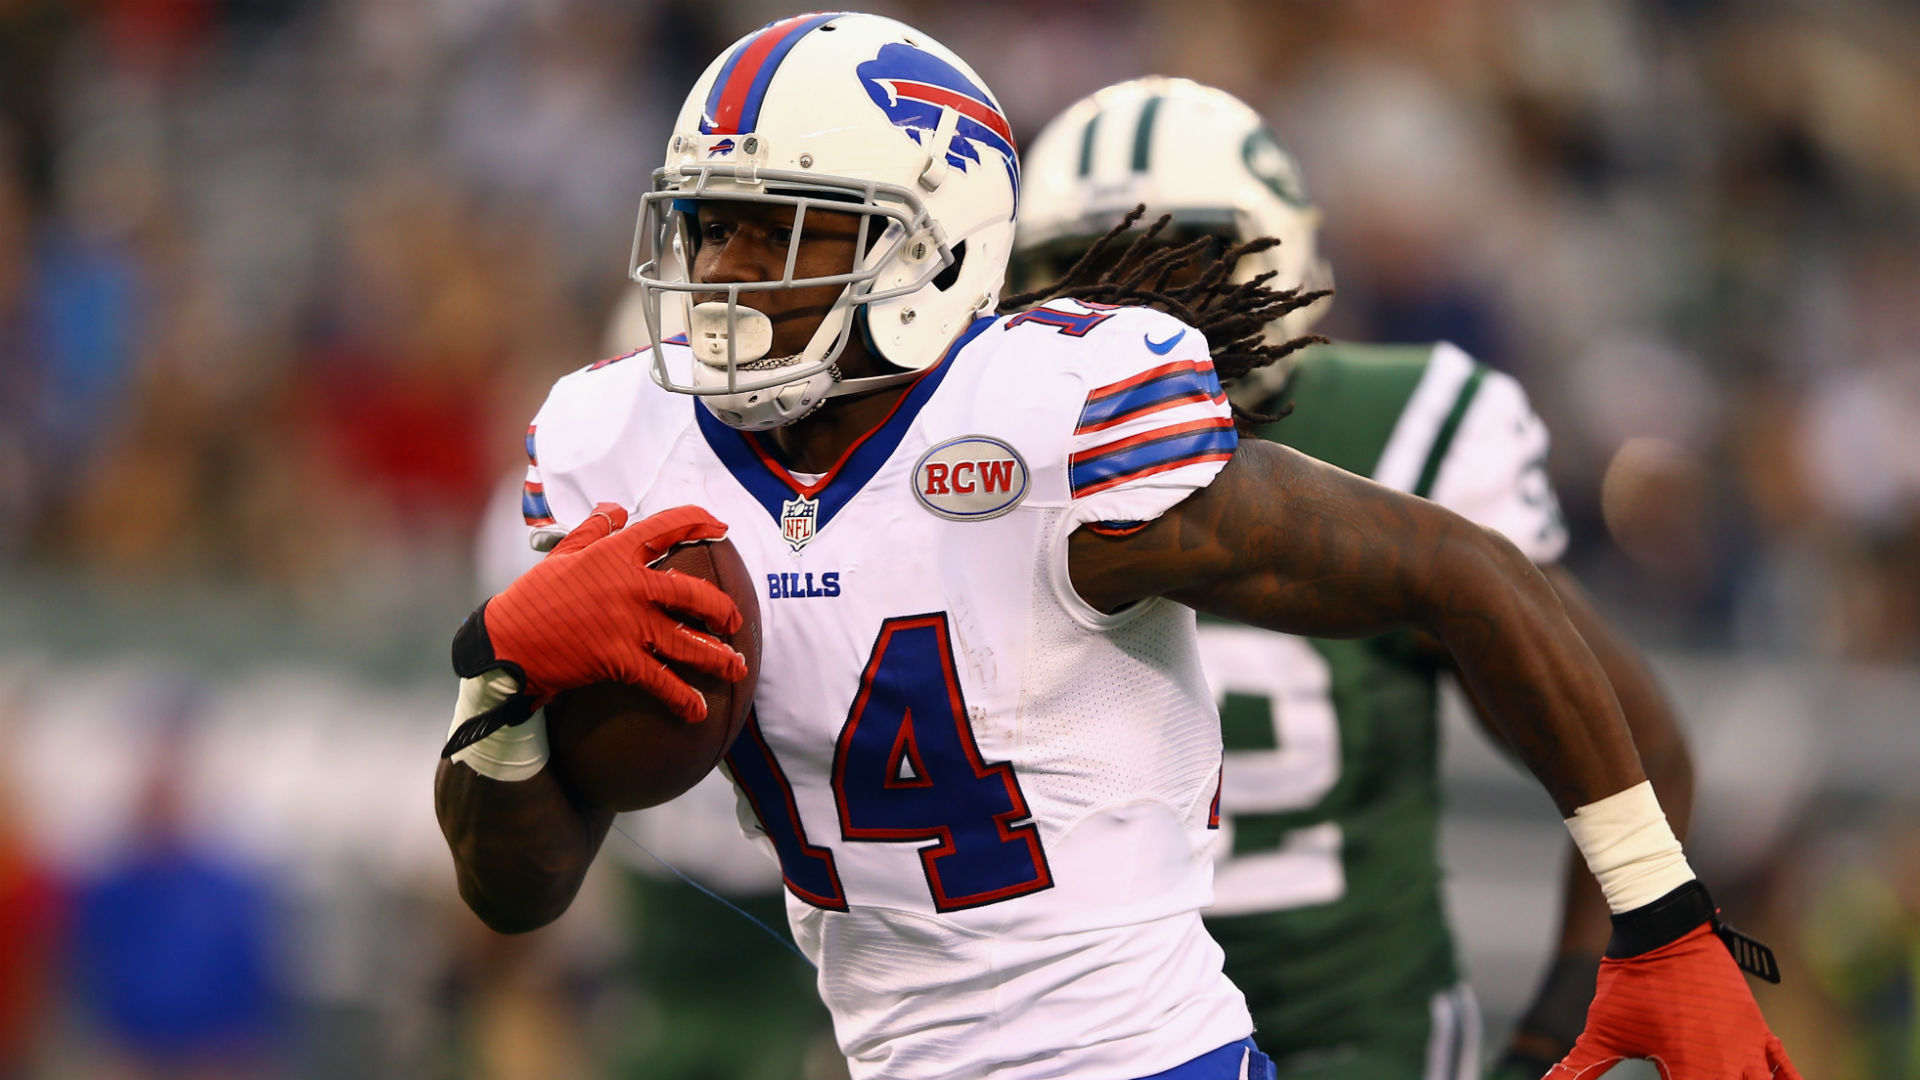 Sammy-Watkins-110714-GETTY-FTR